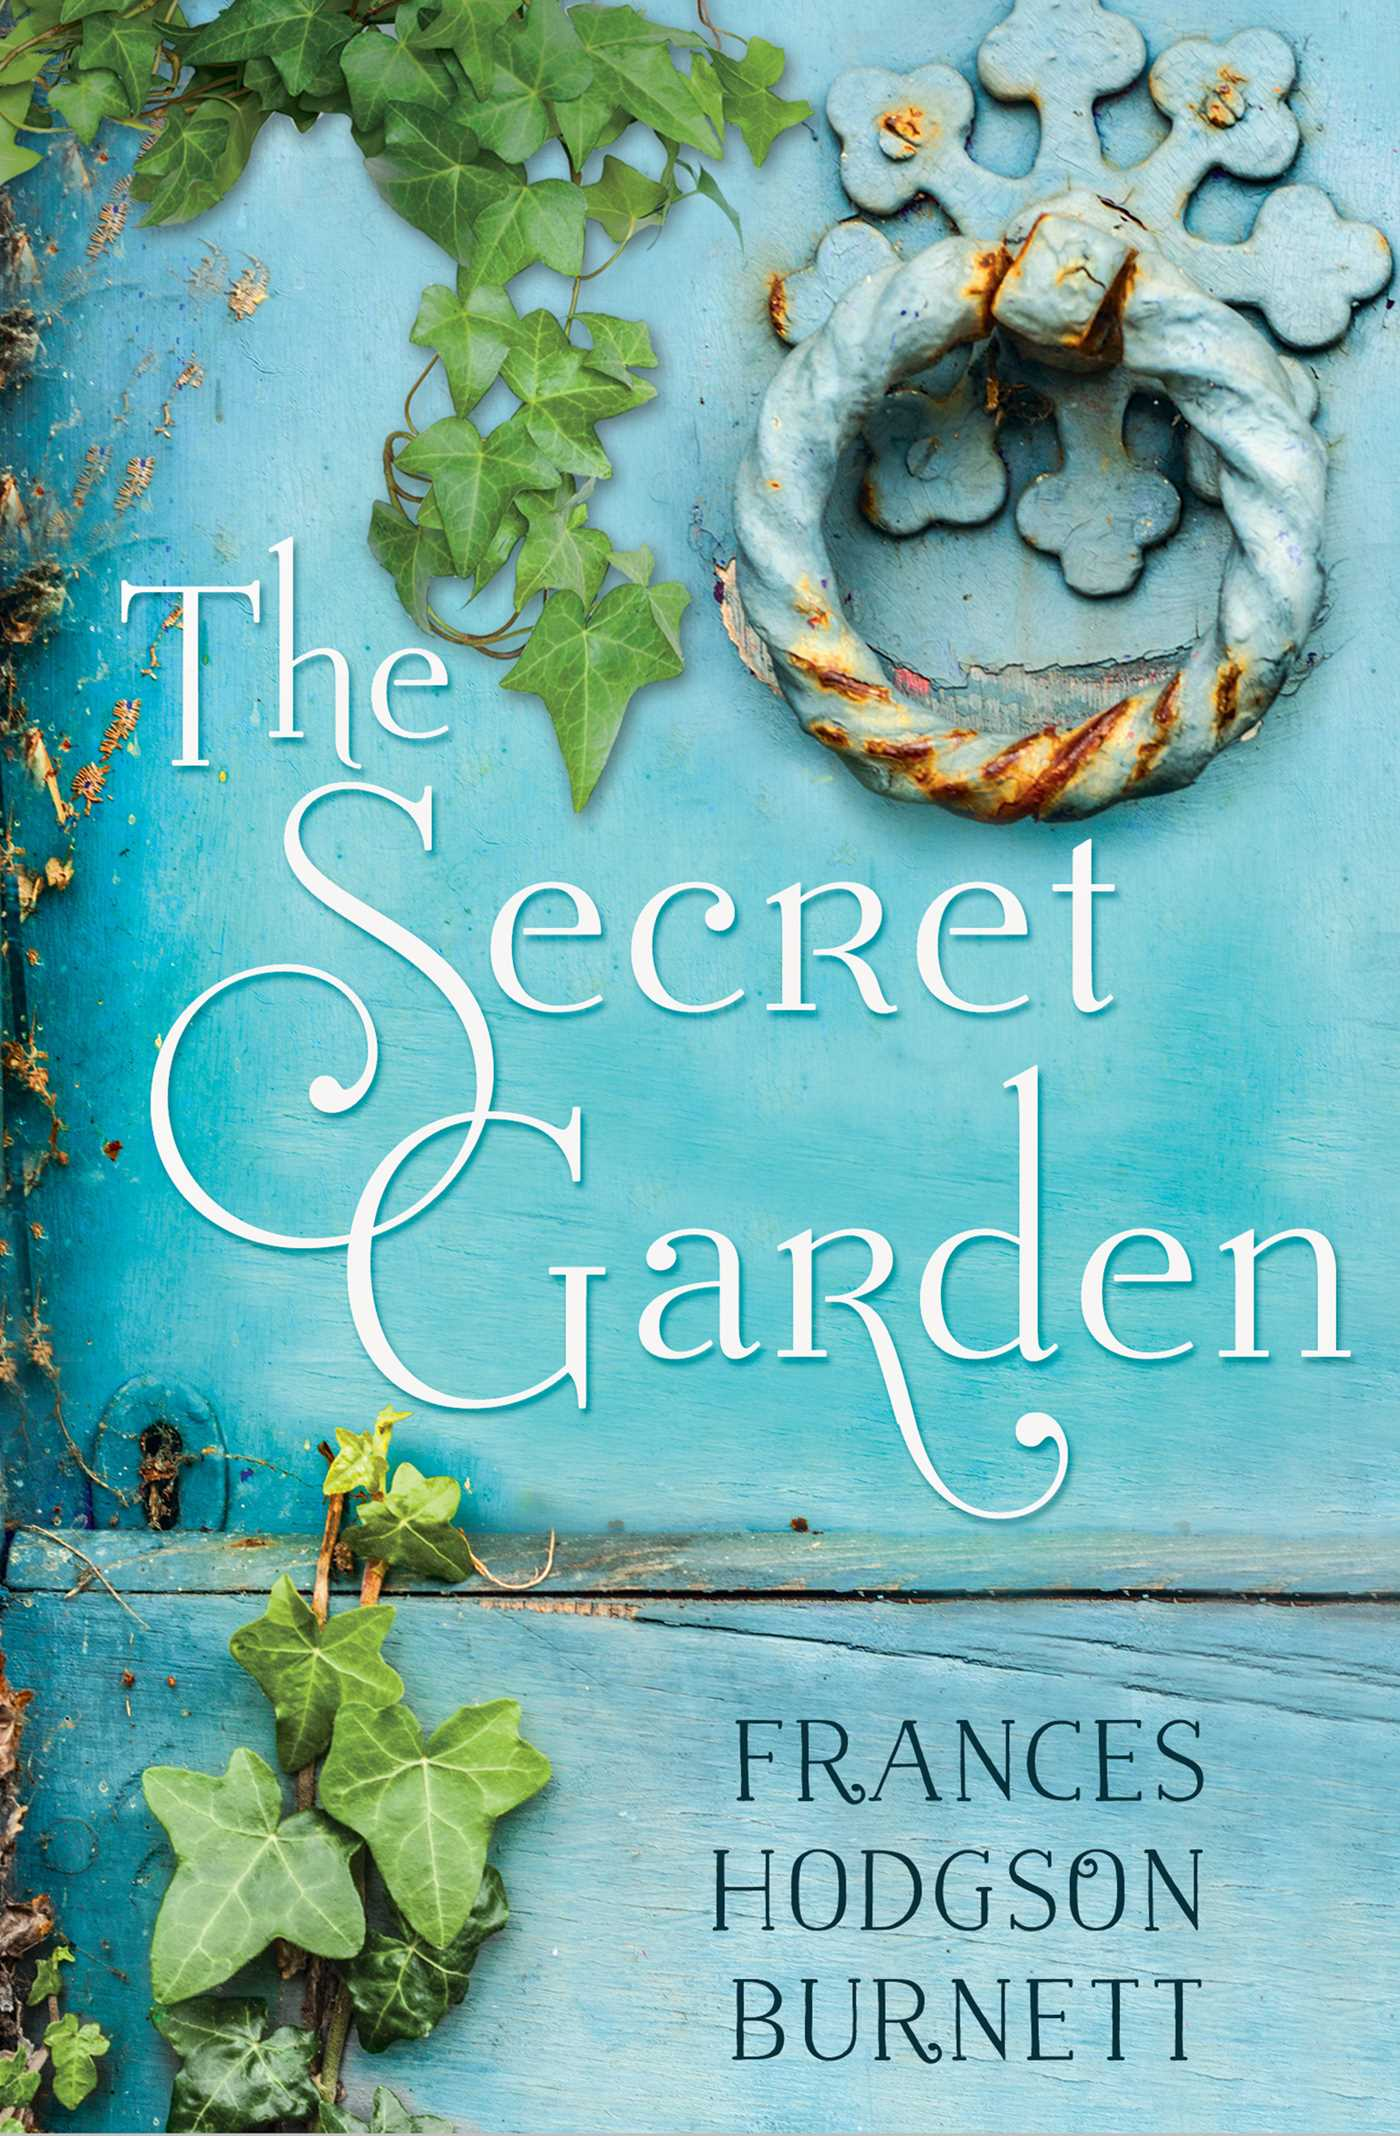 Secret Garden: The Secret Garden EBook By Frances Hodgson Burnett